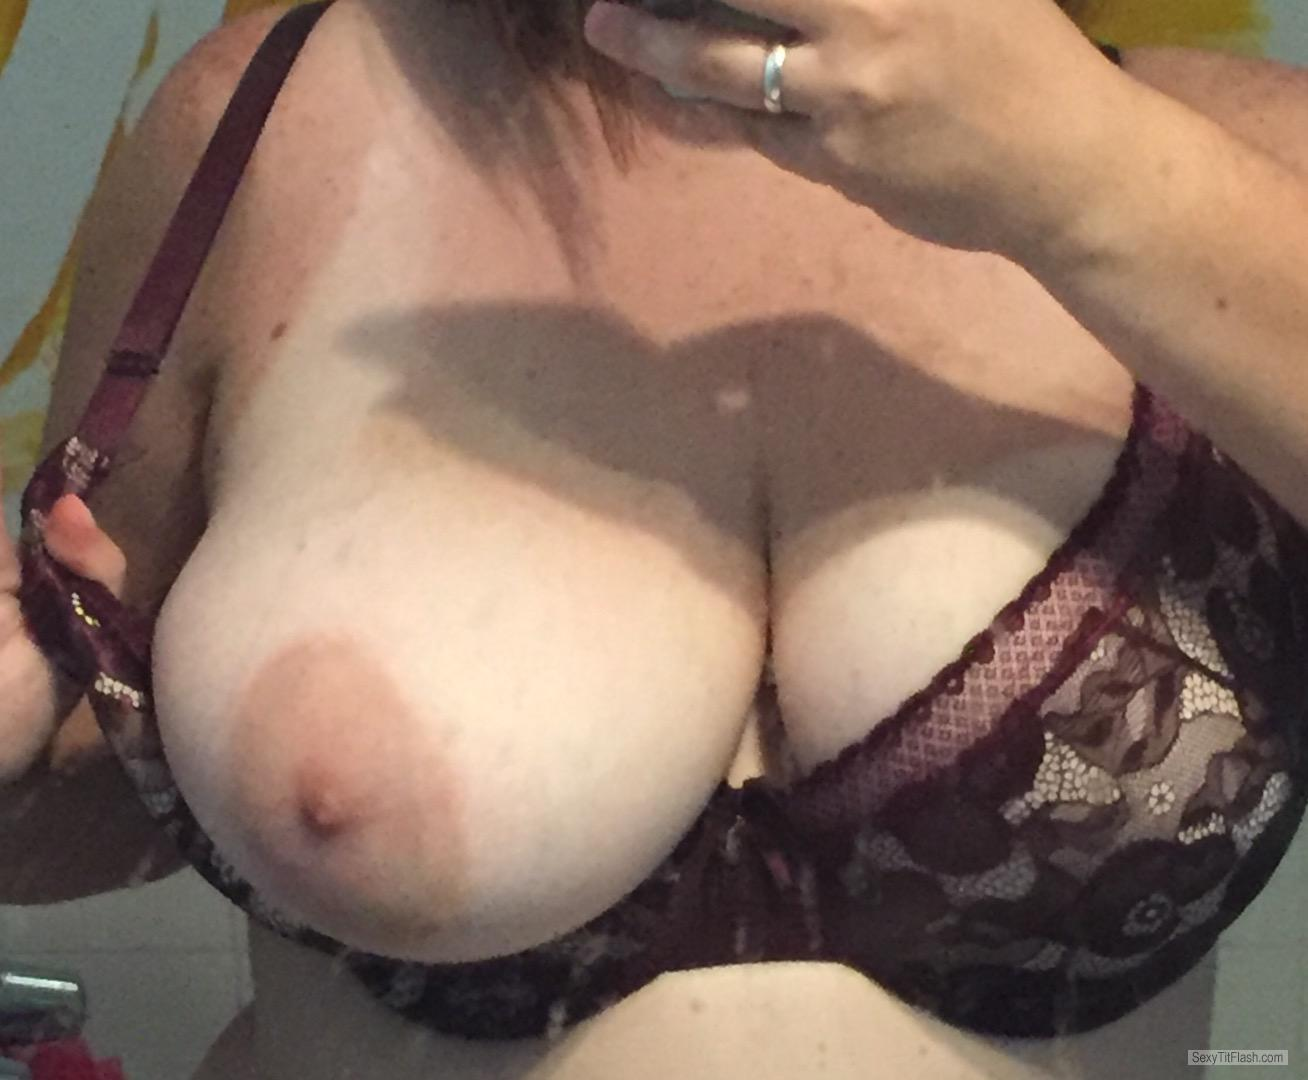 Tit Flash: My Tanlined Very Big Tits (Selfie) - Cleavage Queen from United States